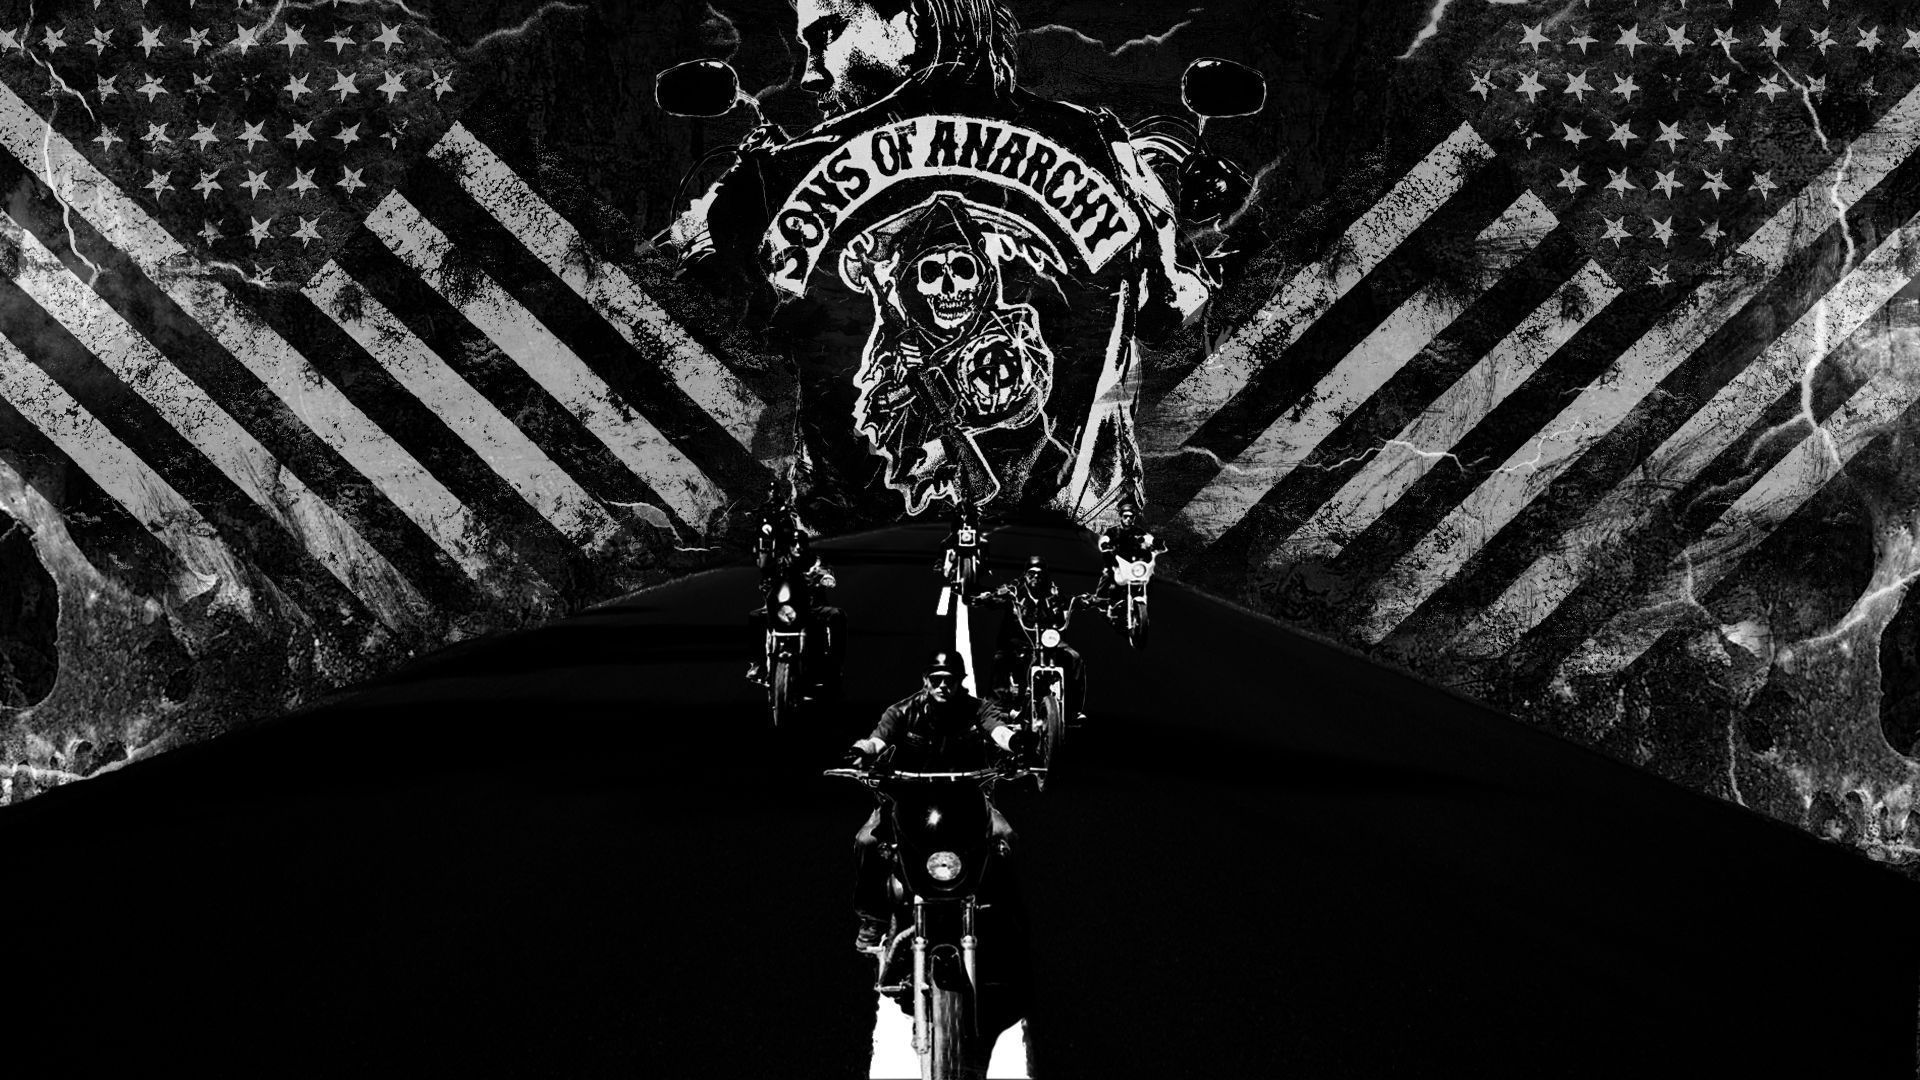 Soa Sons Of Anarchy Wallpapers Top Free Soa Sons Of Anarchy